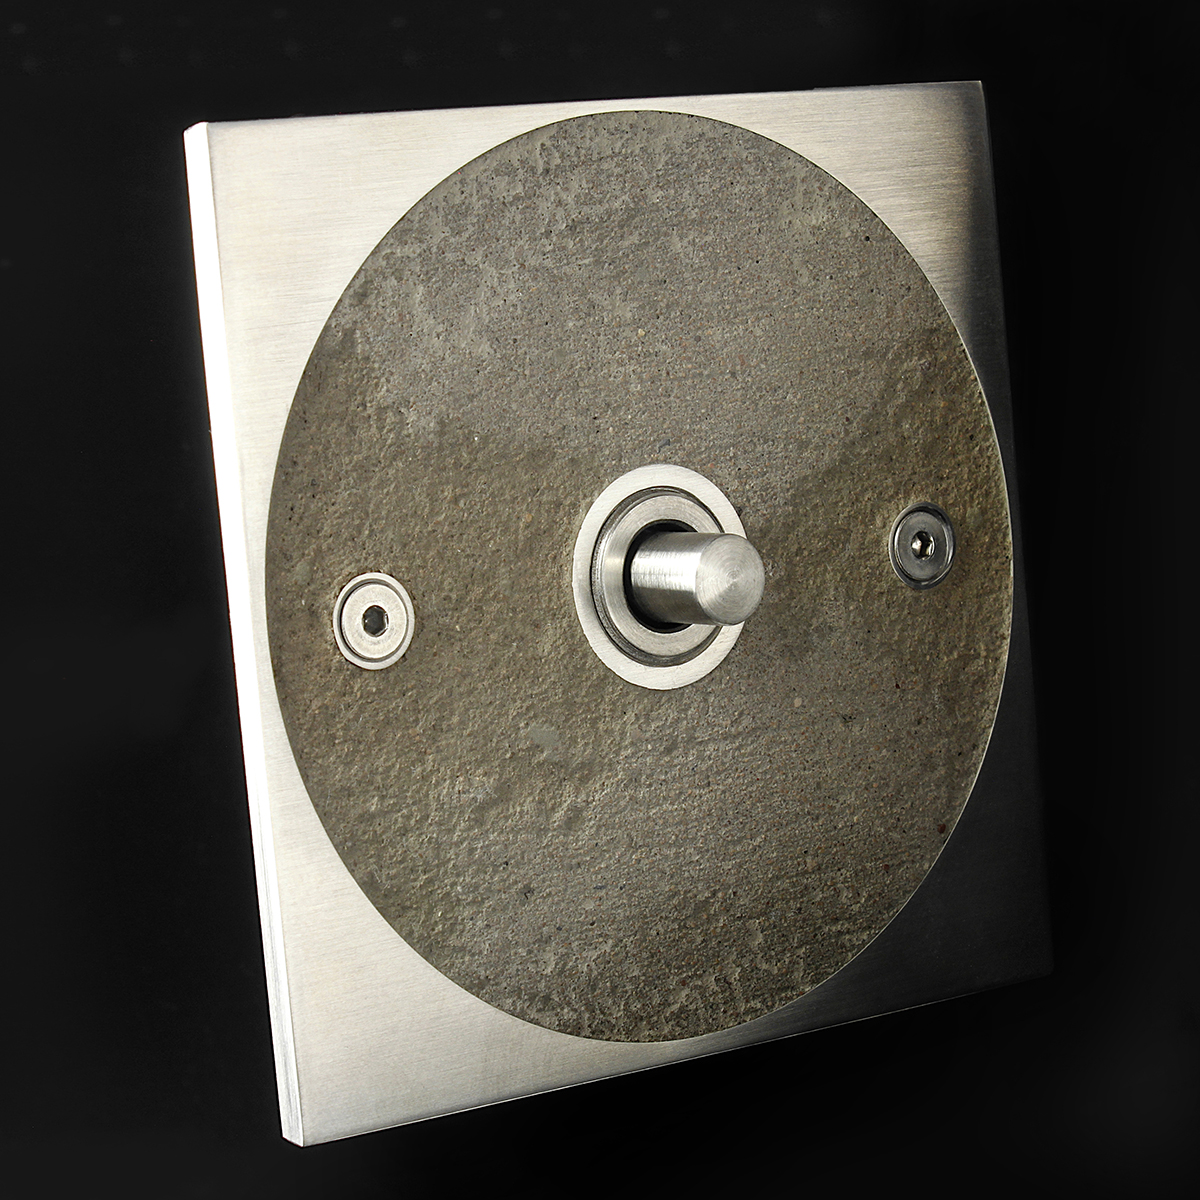 12 stainless steel + concrete, dimmer